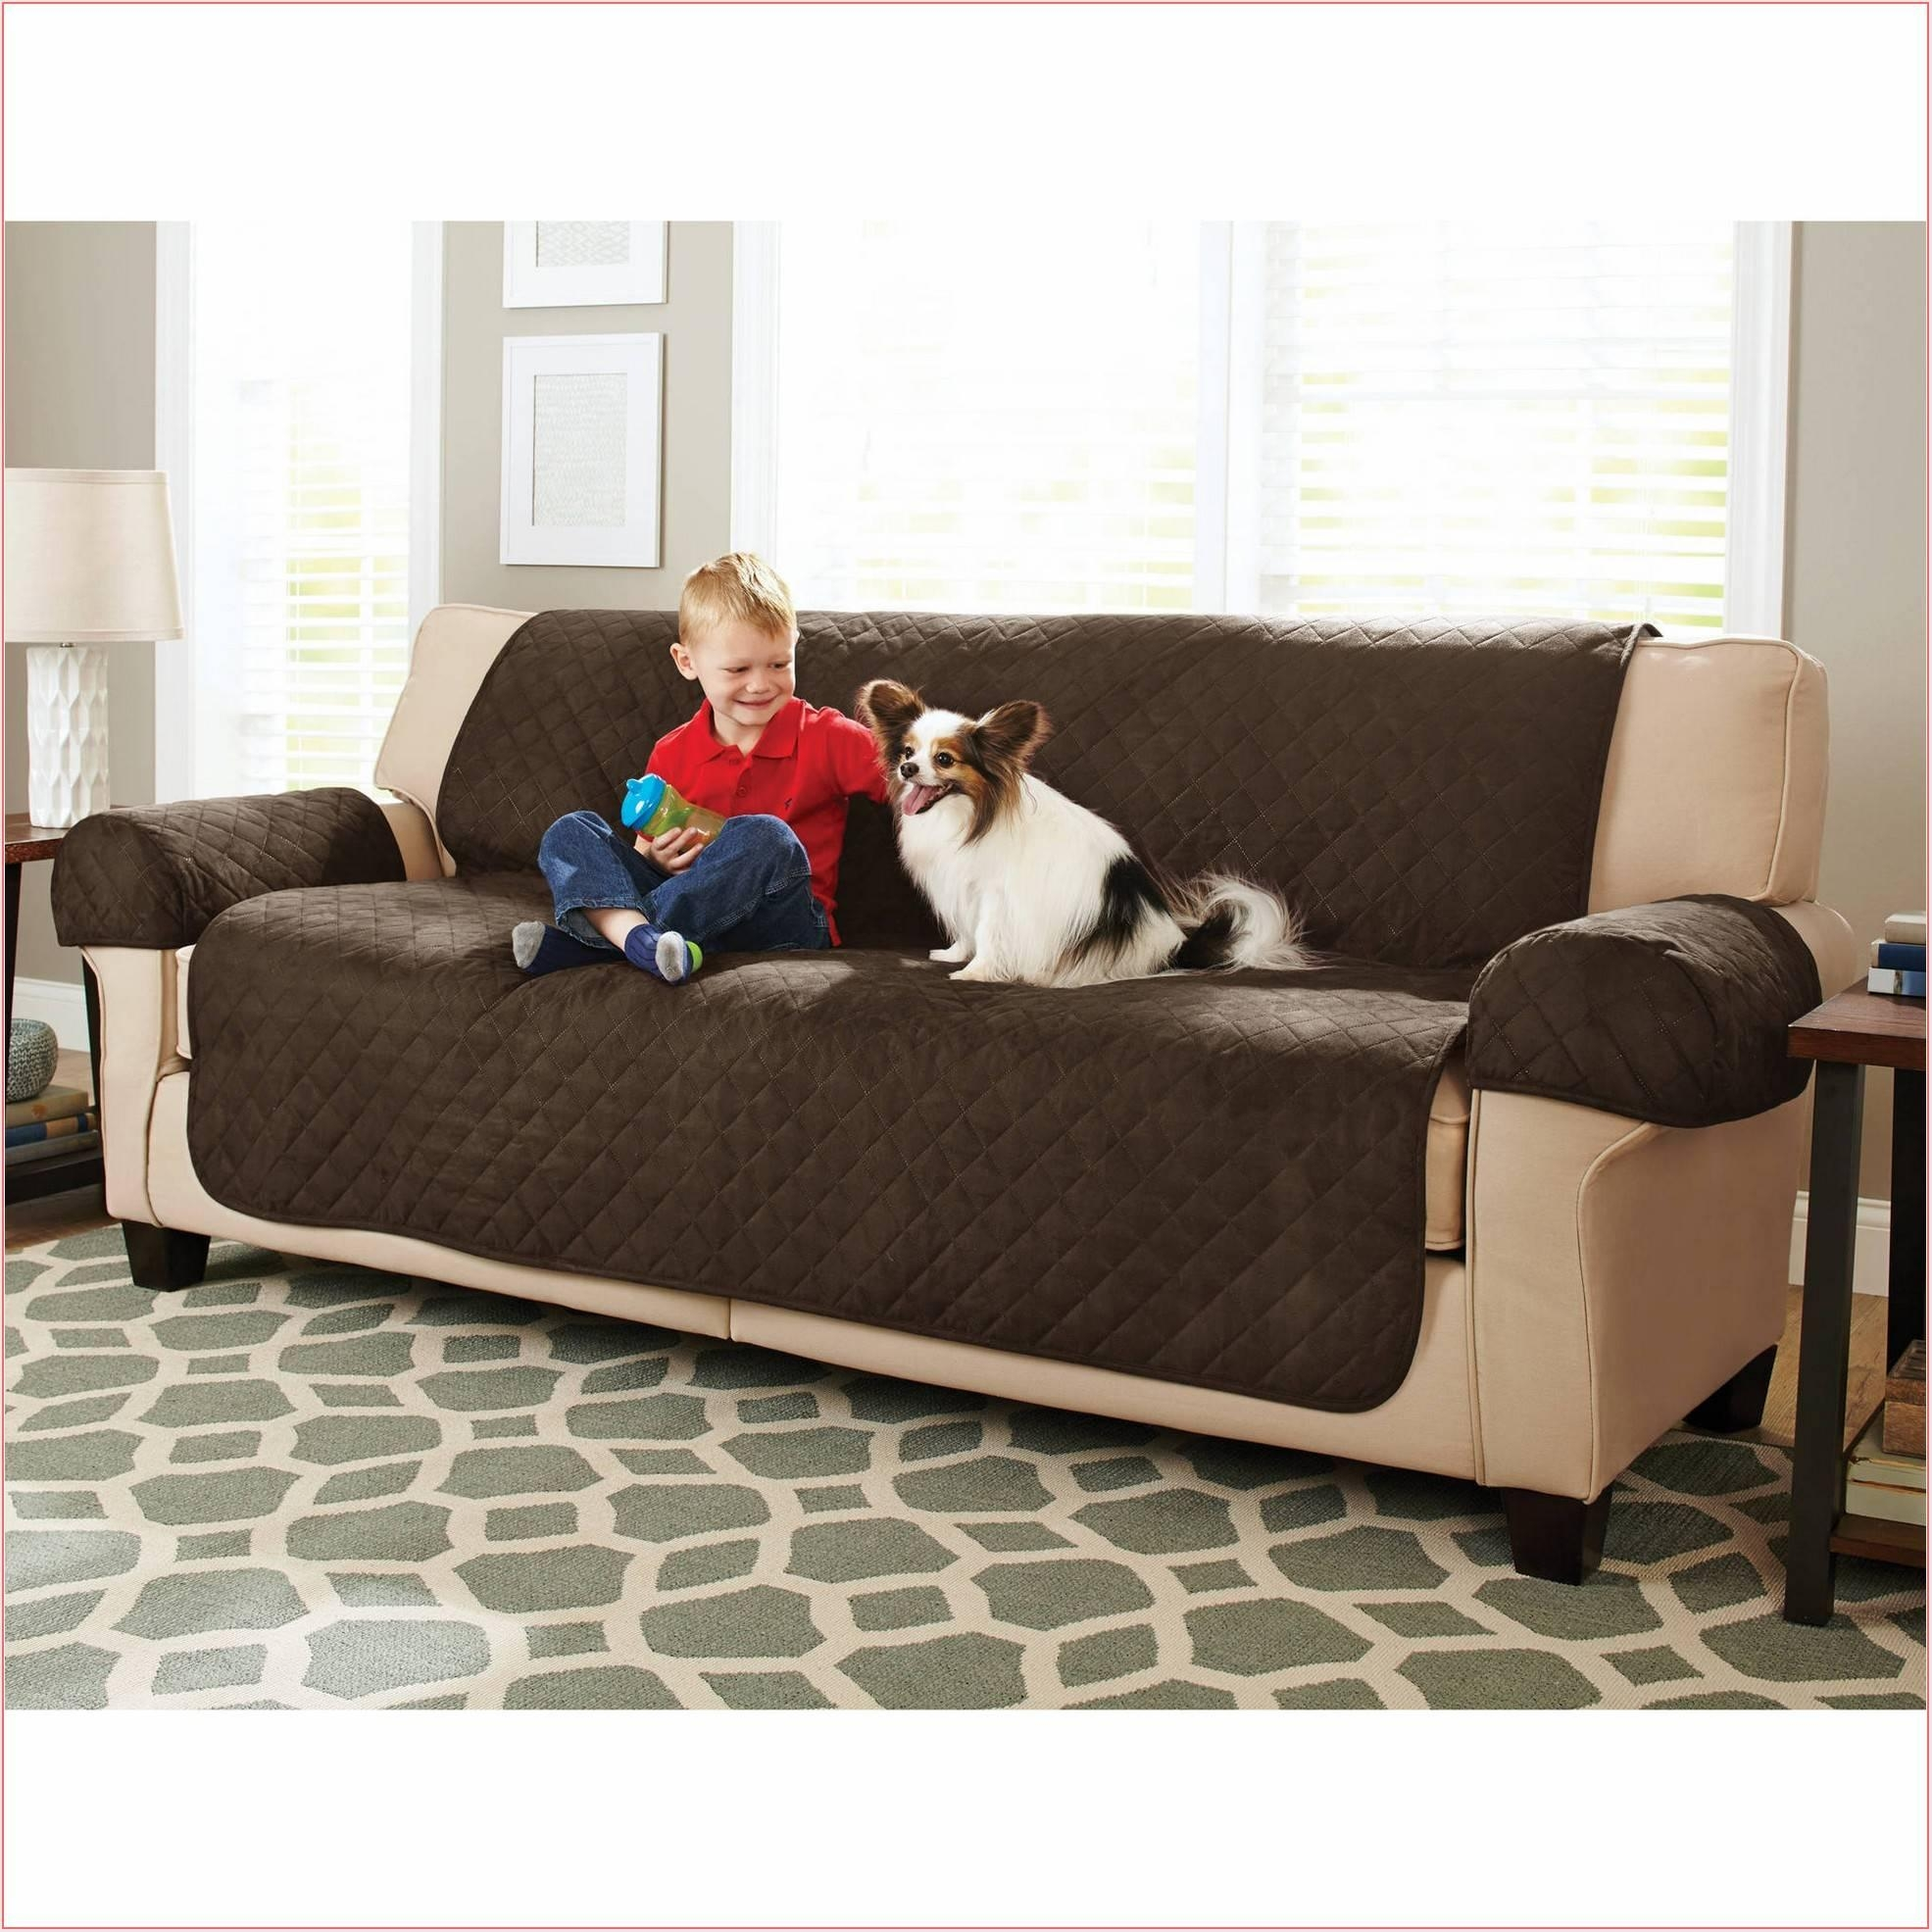 Good Cat Proof Sofa 54 For Sofas And Couches Ideas With Cat Proof Sofa with regard to Cat Proof Sofas